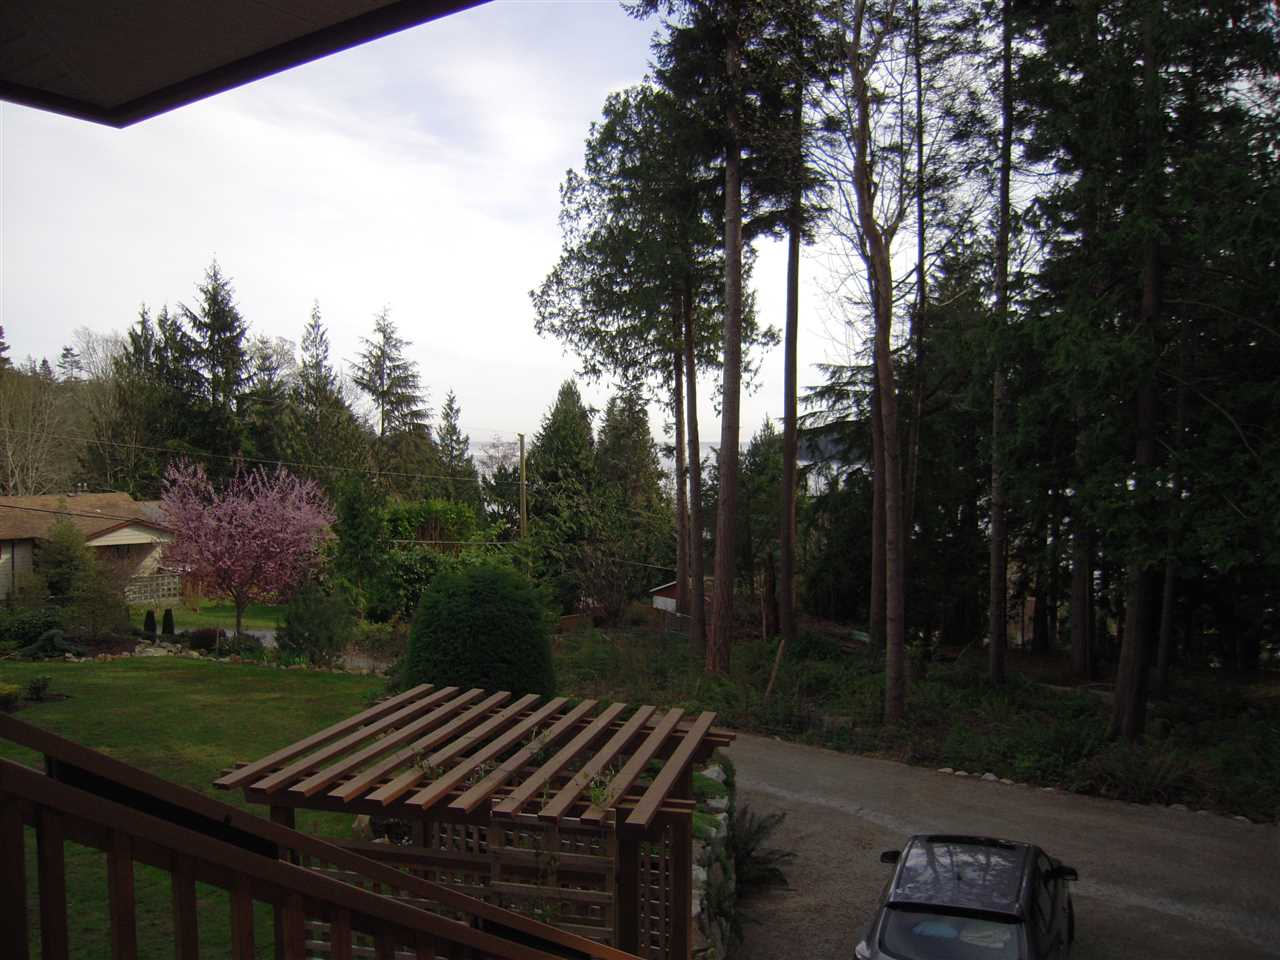 Photo 5: 5447 WAKEFIELD ROAD in Sechelt: Sechelt District House for sale (Sunshine Coast)  : MLS(r) # R2047962